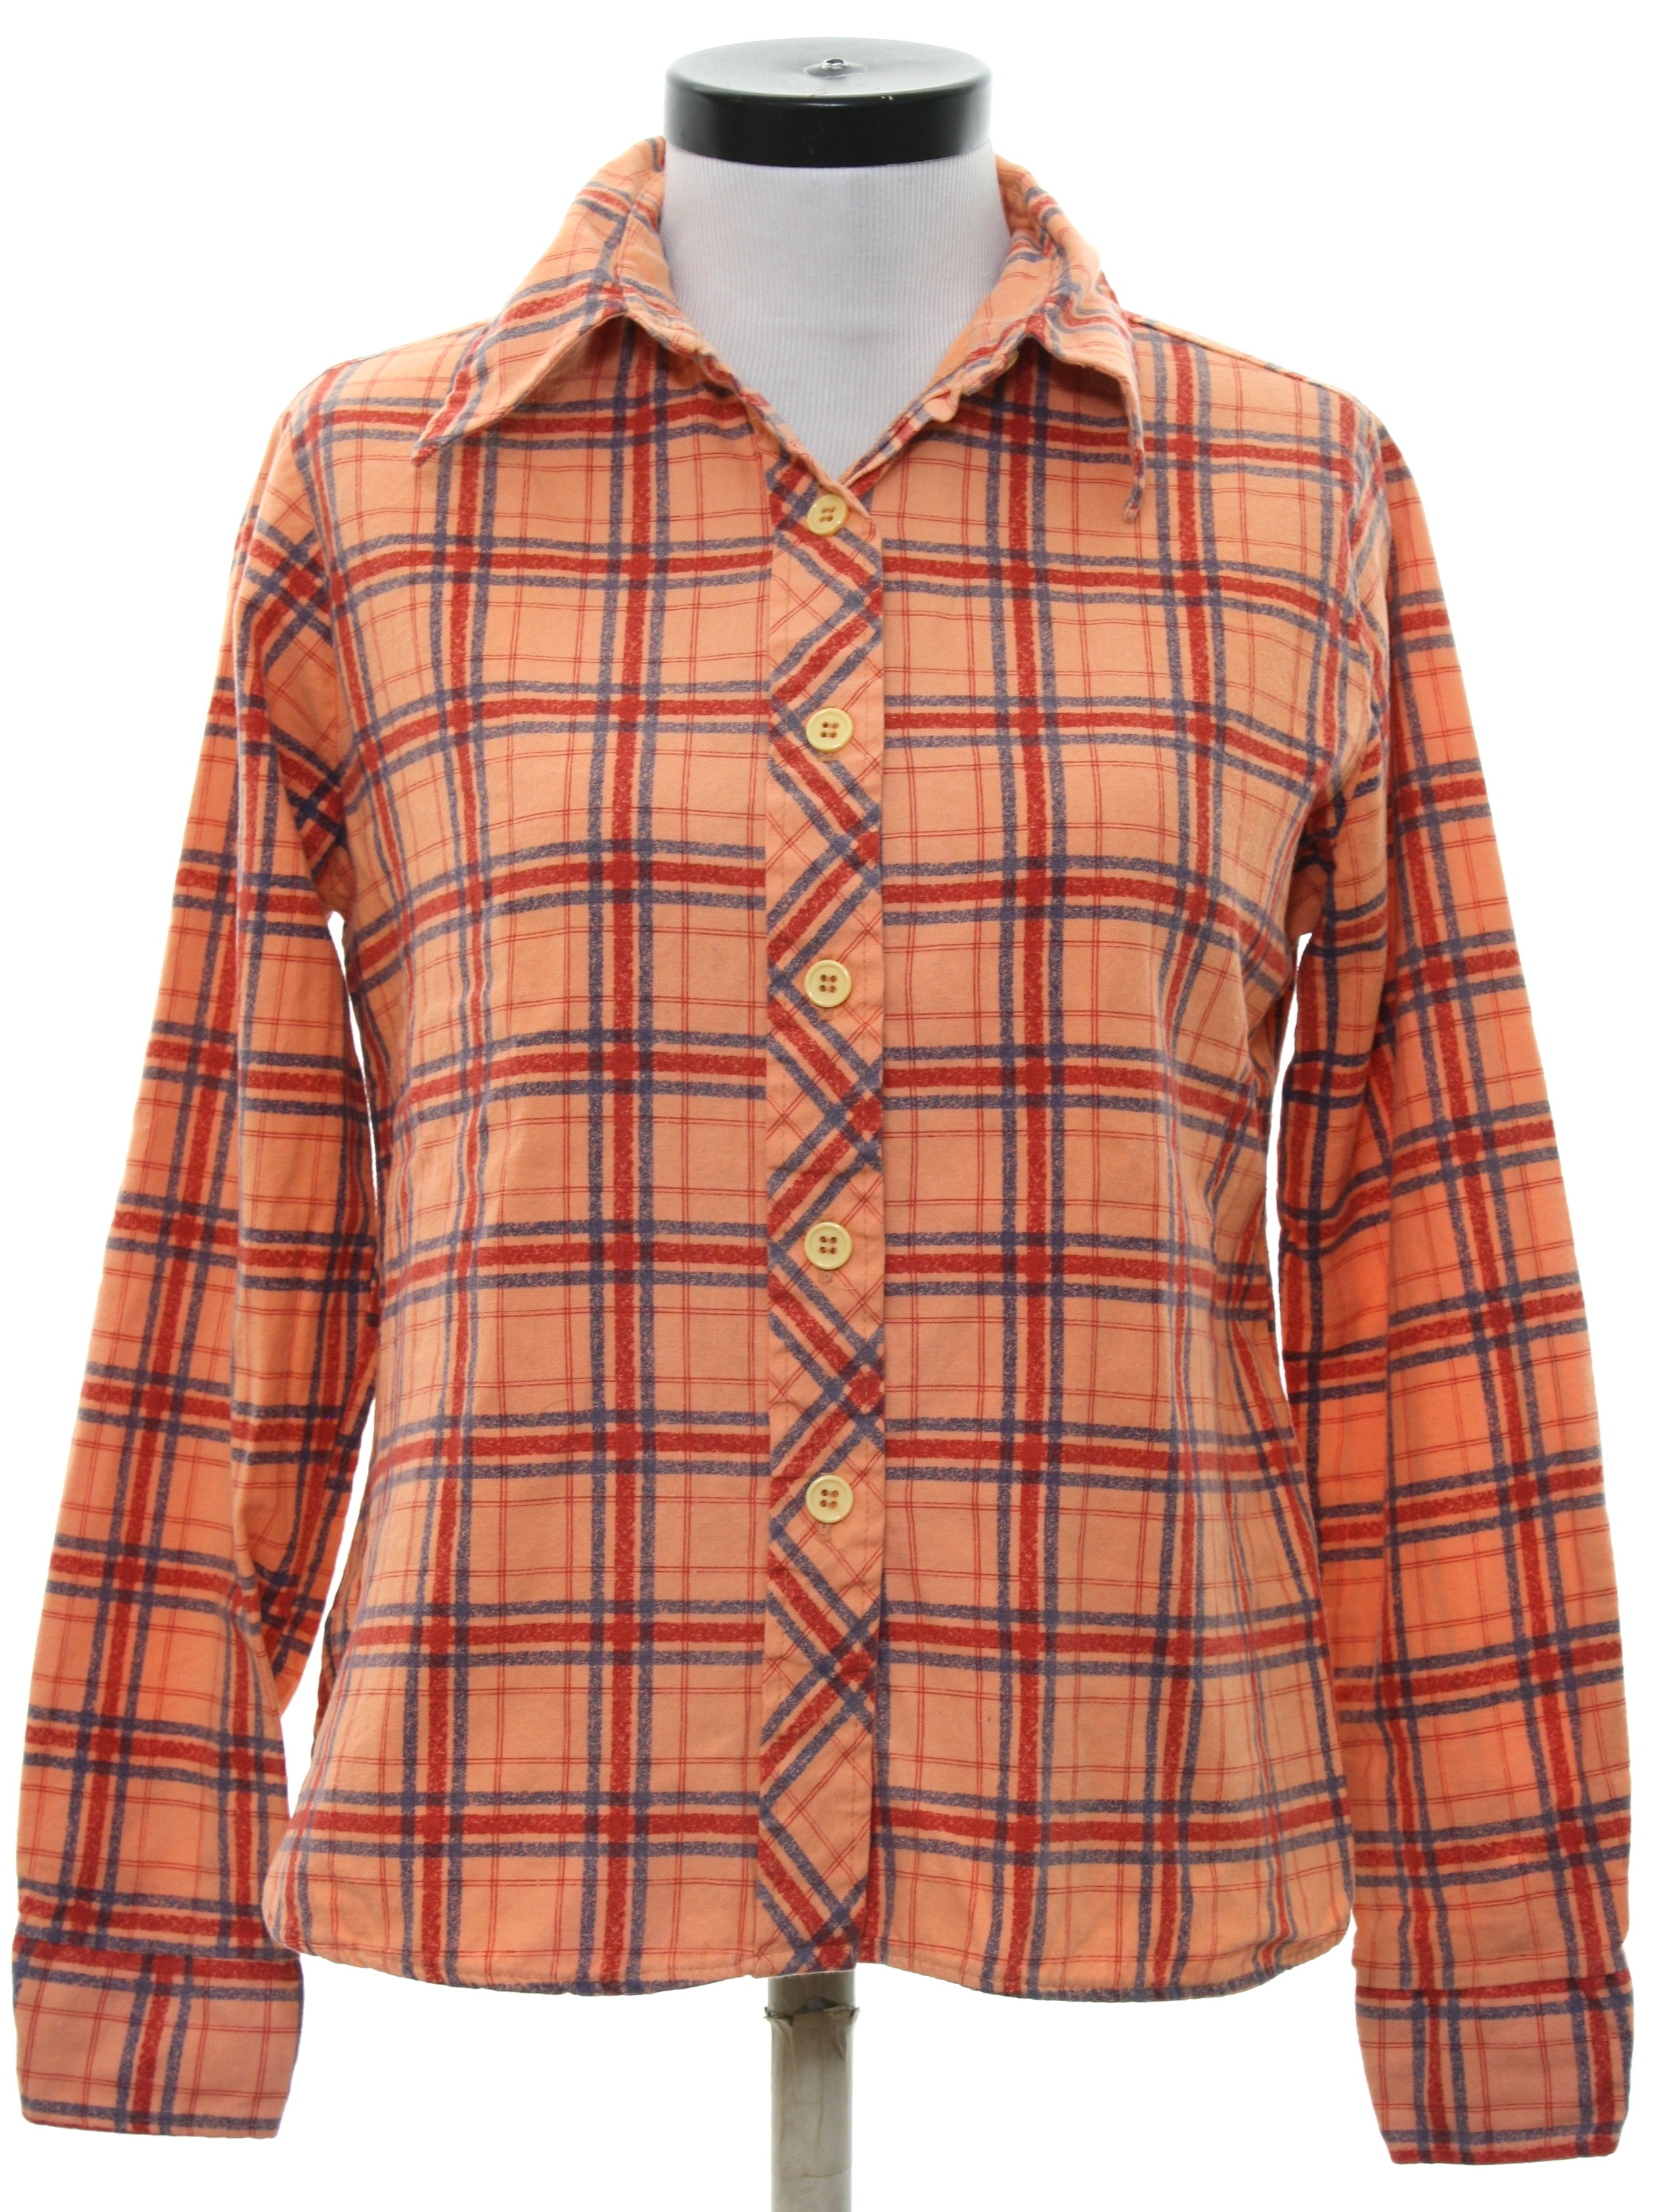 Retro 1970 39 s shirt sears jr bazaar 70s sears jr for Cotton polyester flannel shirts